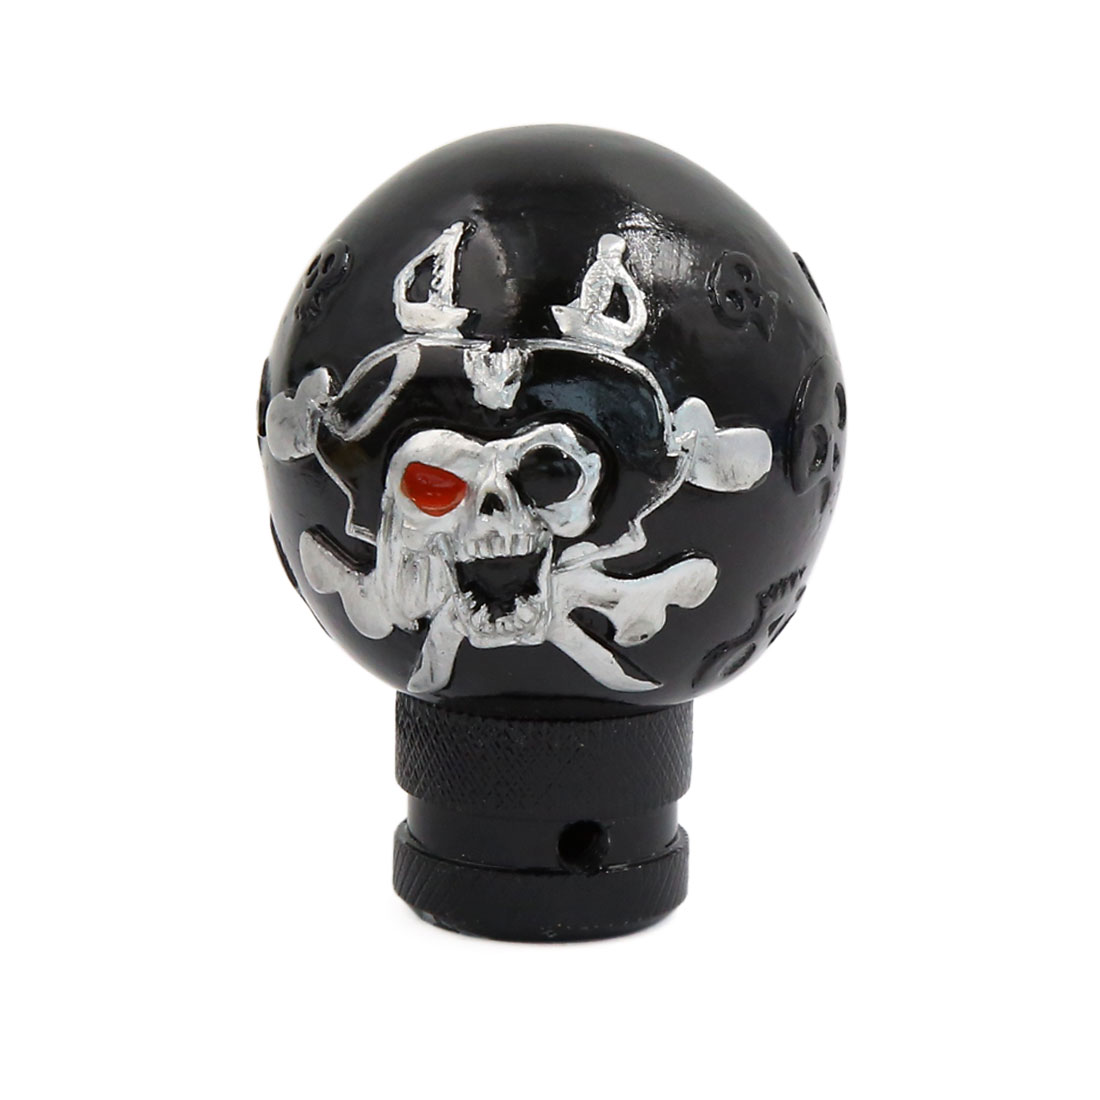 Black Skull Head Design Gear Shift Lever Knob for Auto Car Vehicle